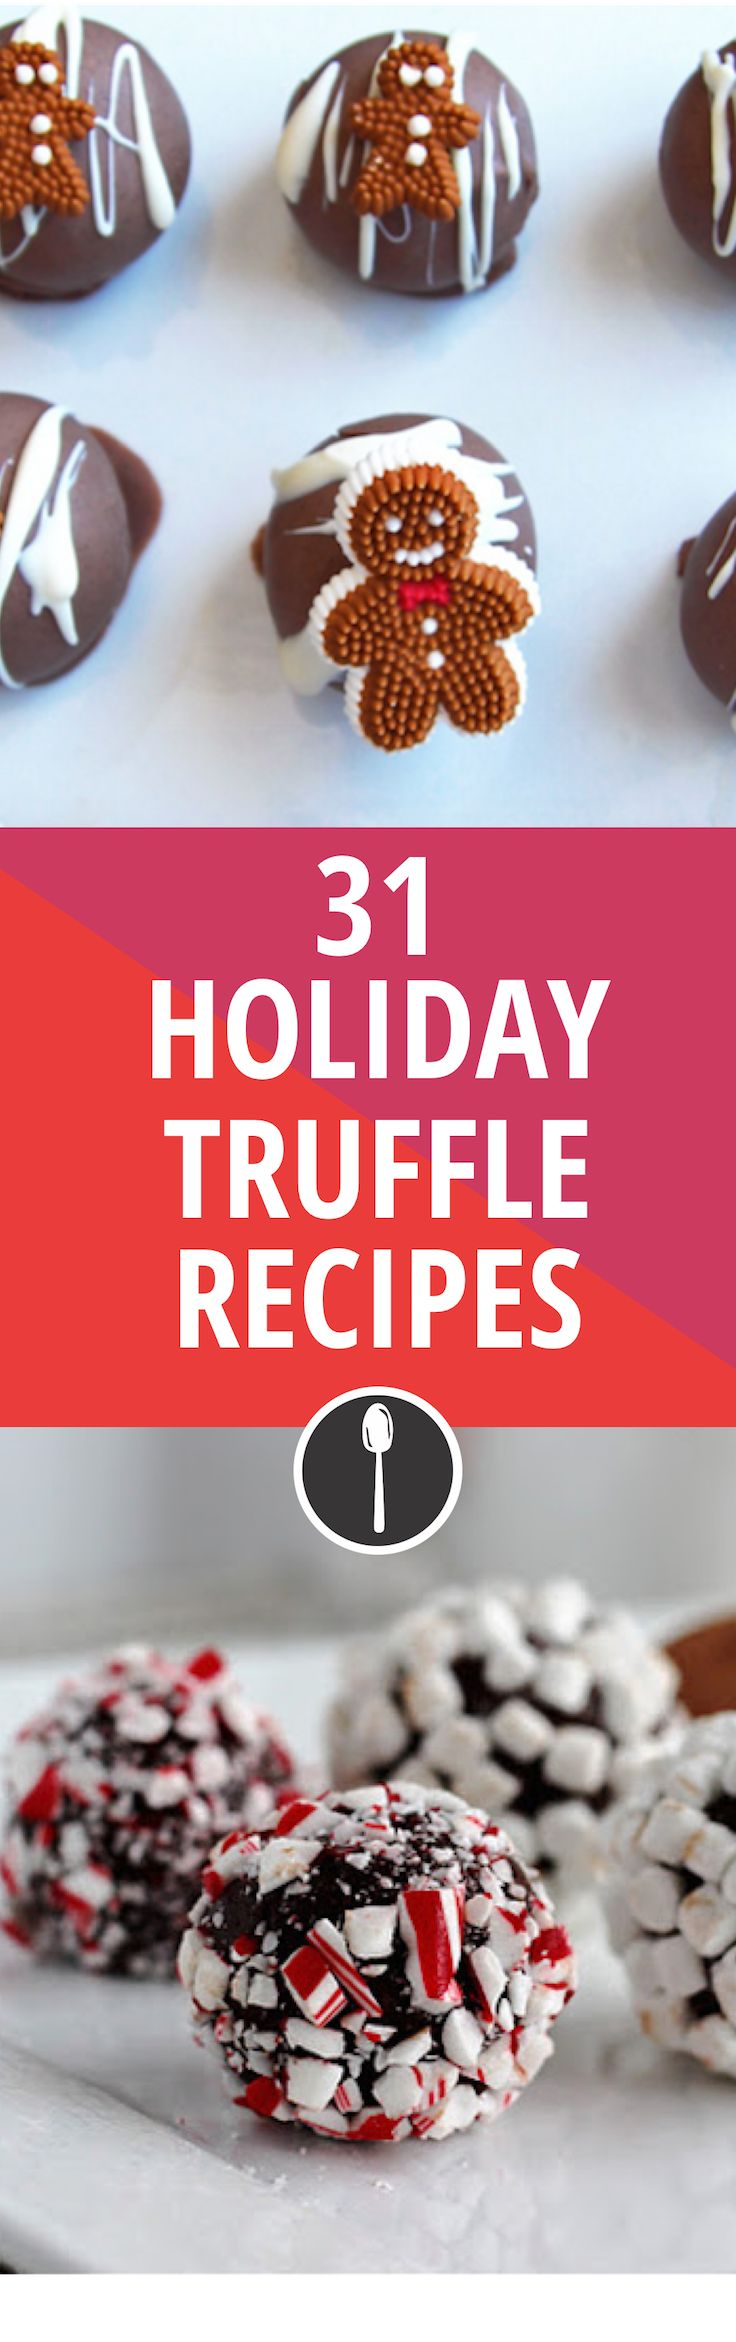 With #holiday festivities just around the corner, plan on adding these #truffle recipes to your holiday dinner (and leave a few by the fireplace for #Santa).